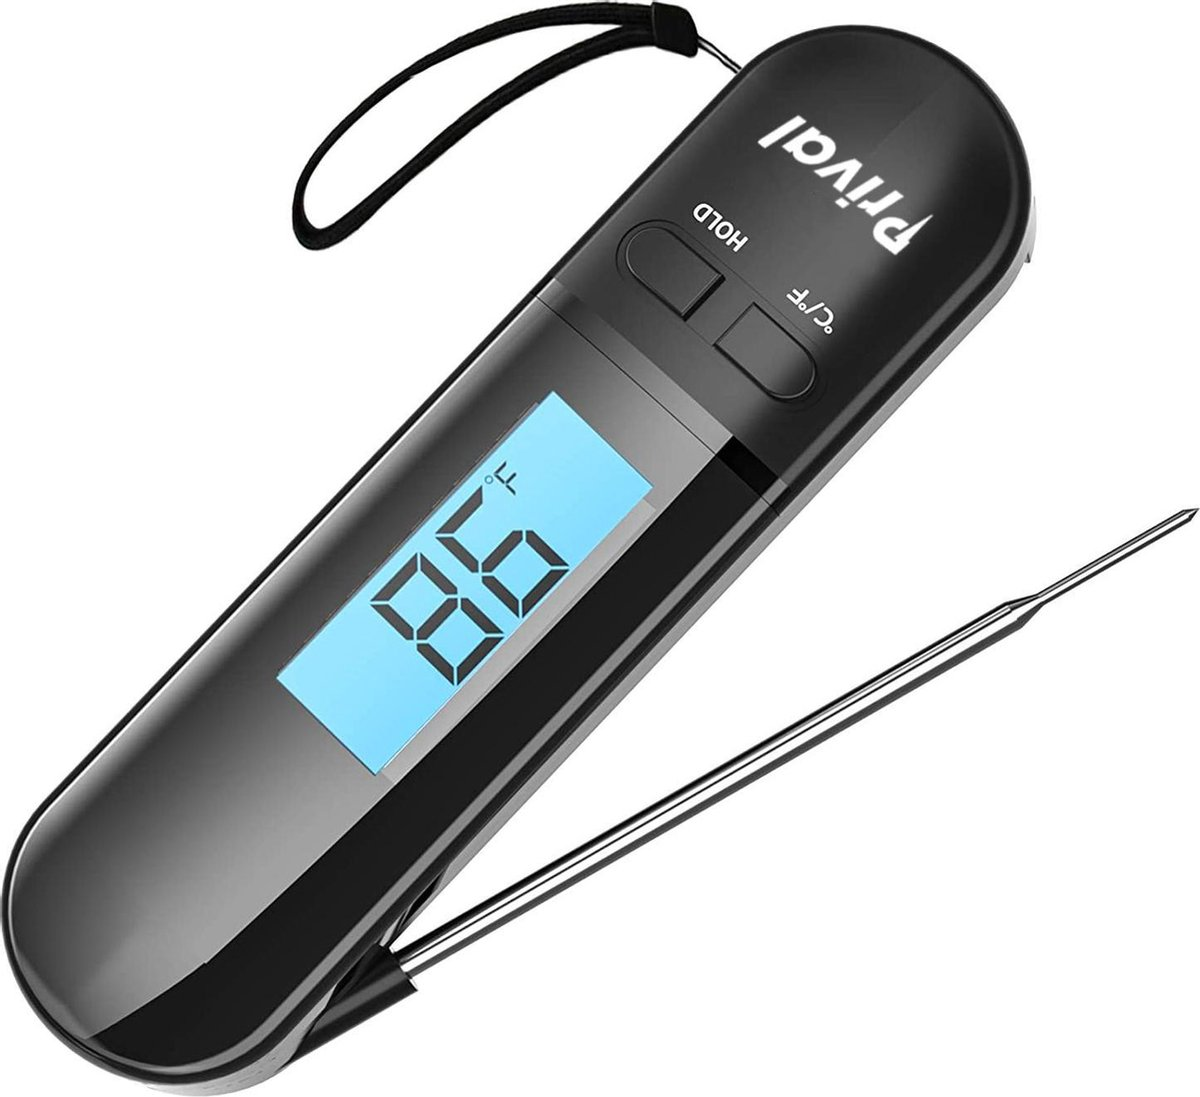 Prival Vleesthermometer - BBQ Thermometer - Digitaal - Draadloos - Oven - Vleesthermometers